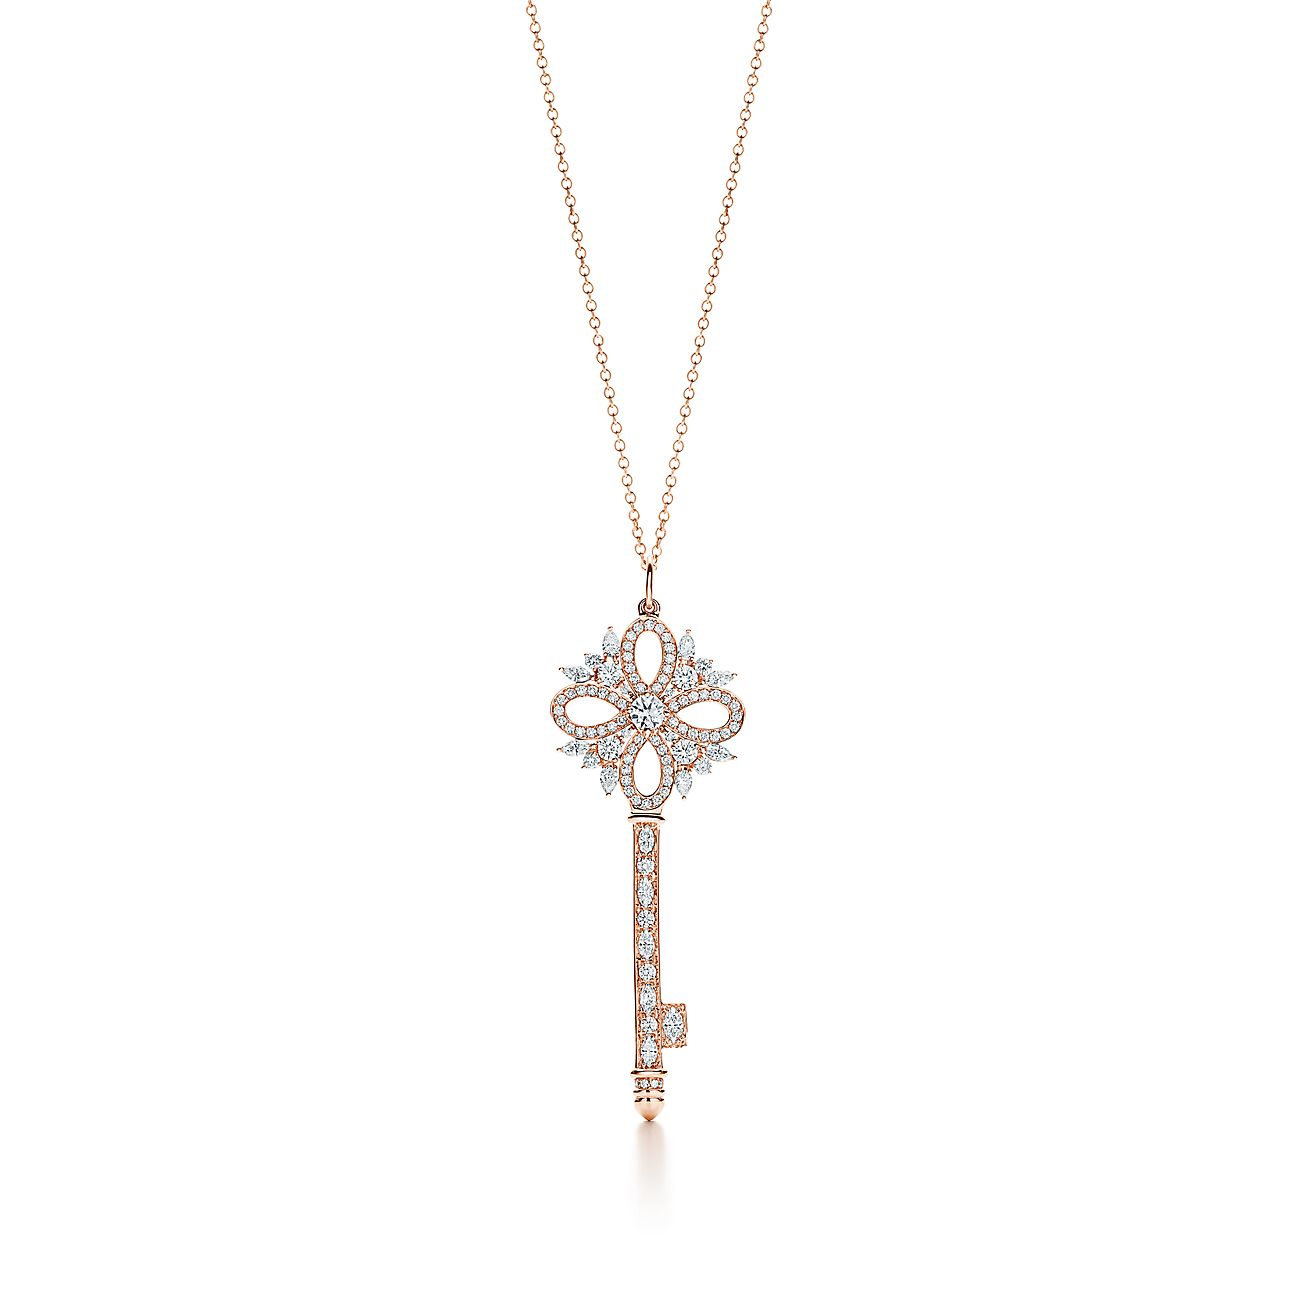 Tiffany Keys Tiffany Victoria Key Pendant In Rose Gold With Diamonds Large Tiffany Co